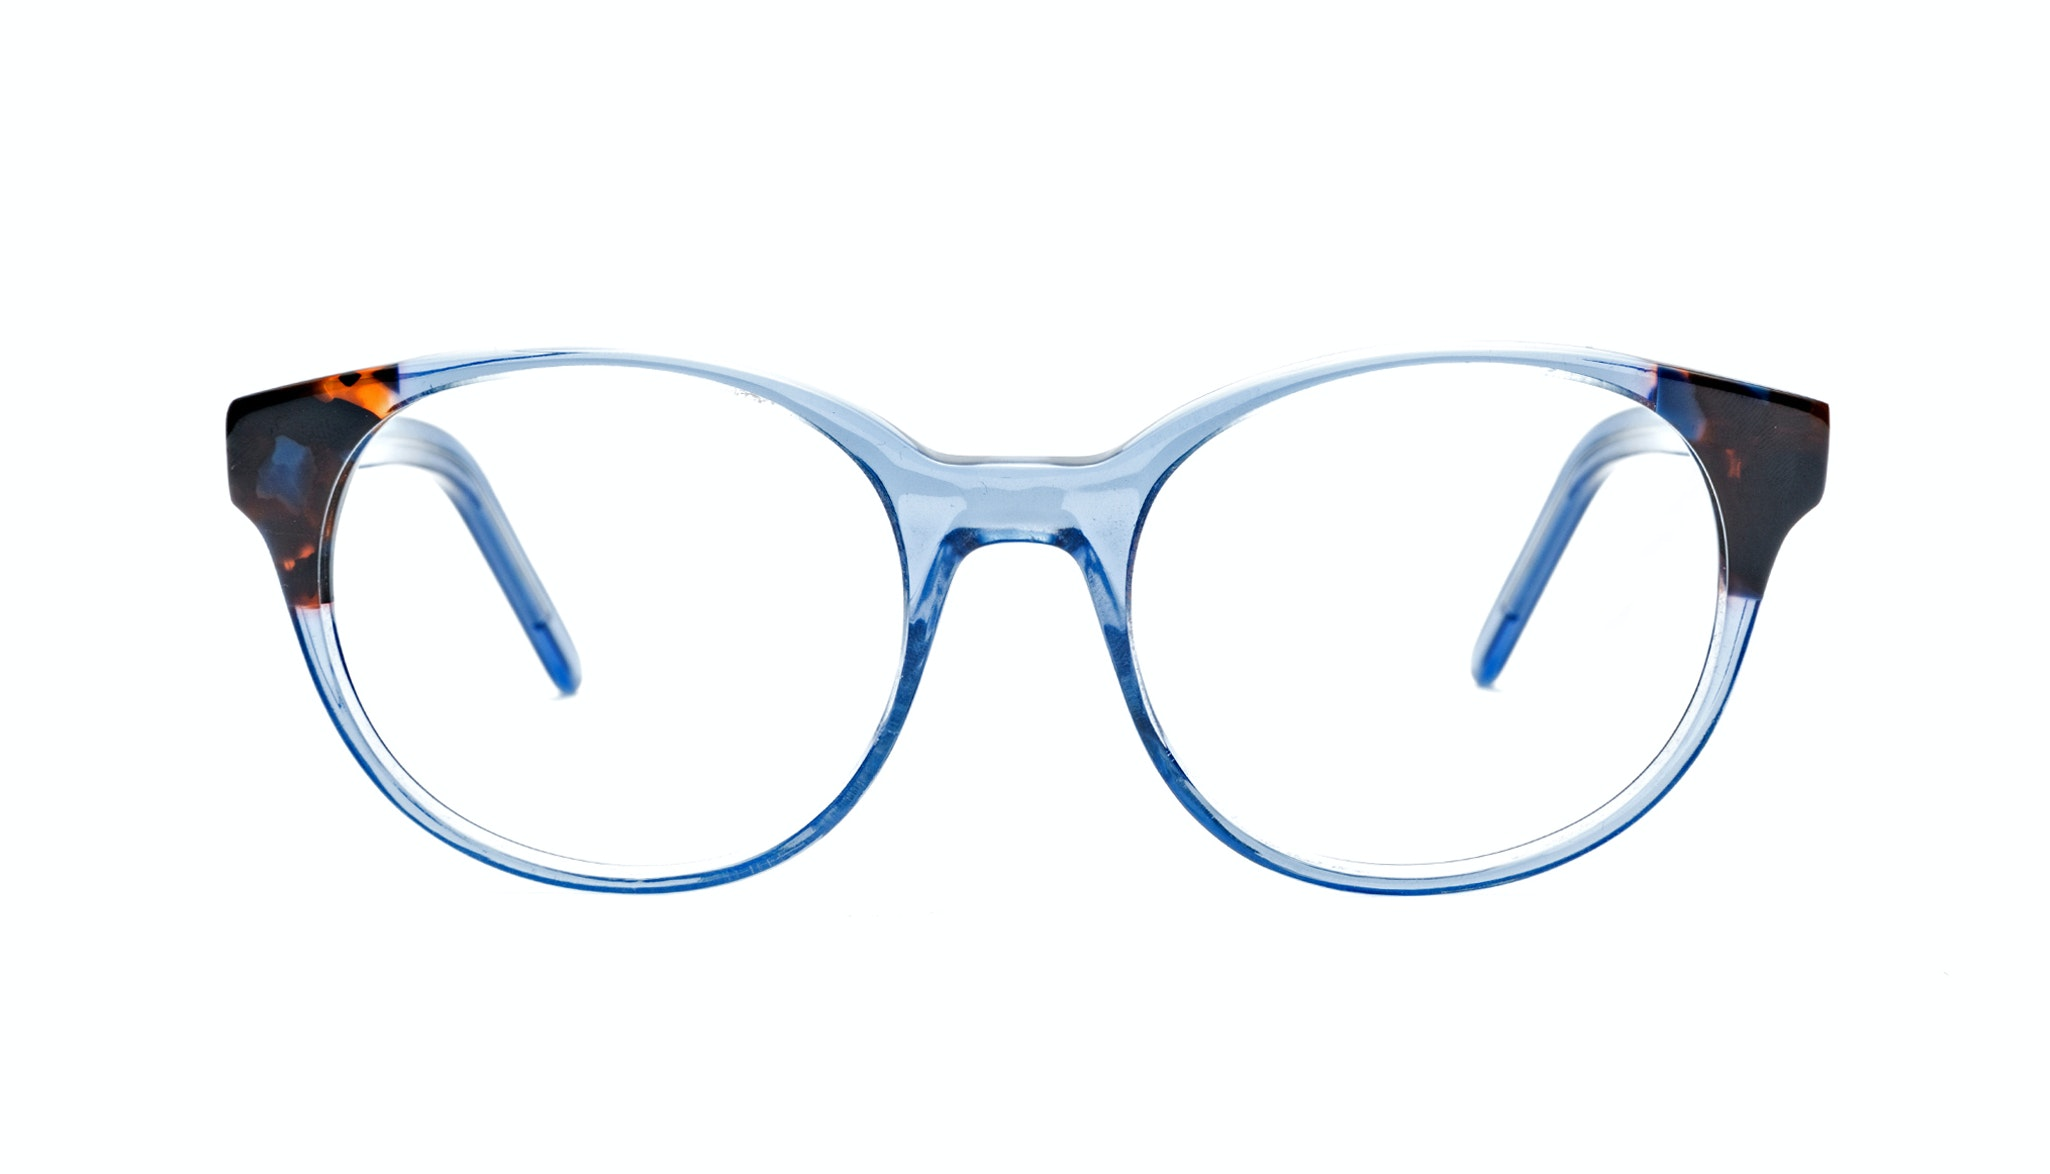 Affordable Fashion Glasses Round Eyeglasses Women Bis Blue Wonder